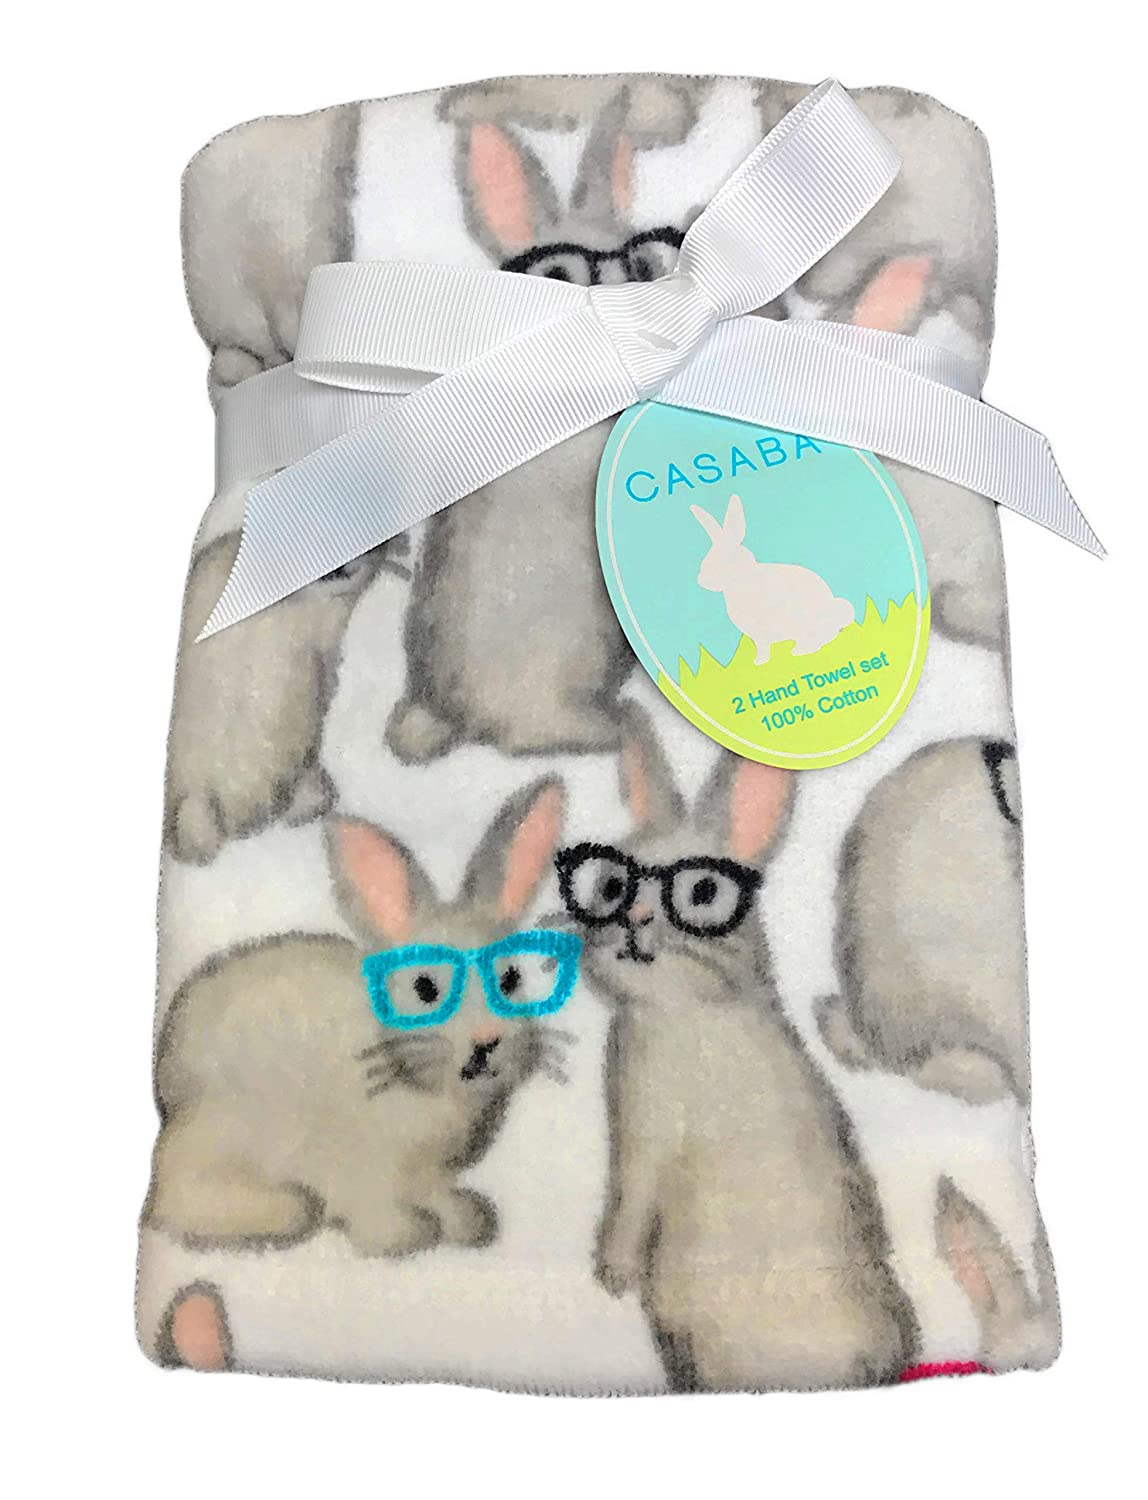 Cute Grey Bunny Rabbits Wearing Colorful Eyeglasses 100/% Cotton Set of Two Decorative Easter Bathroom Guest Hand Towels Casaba